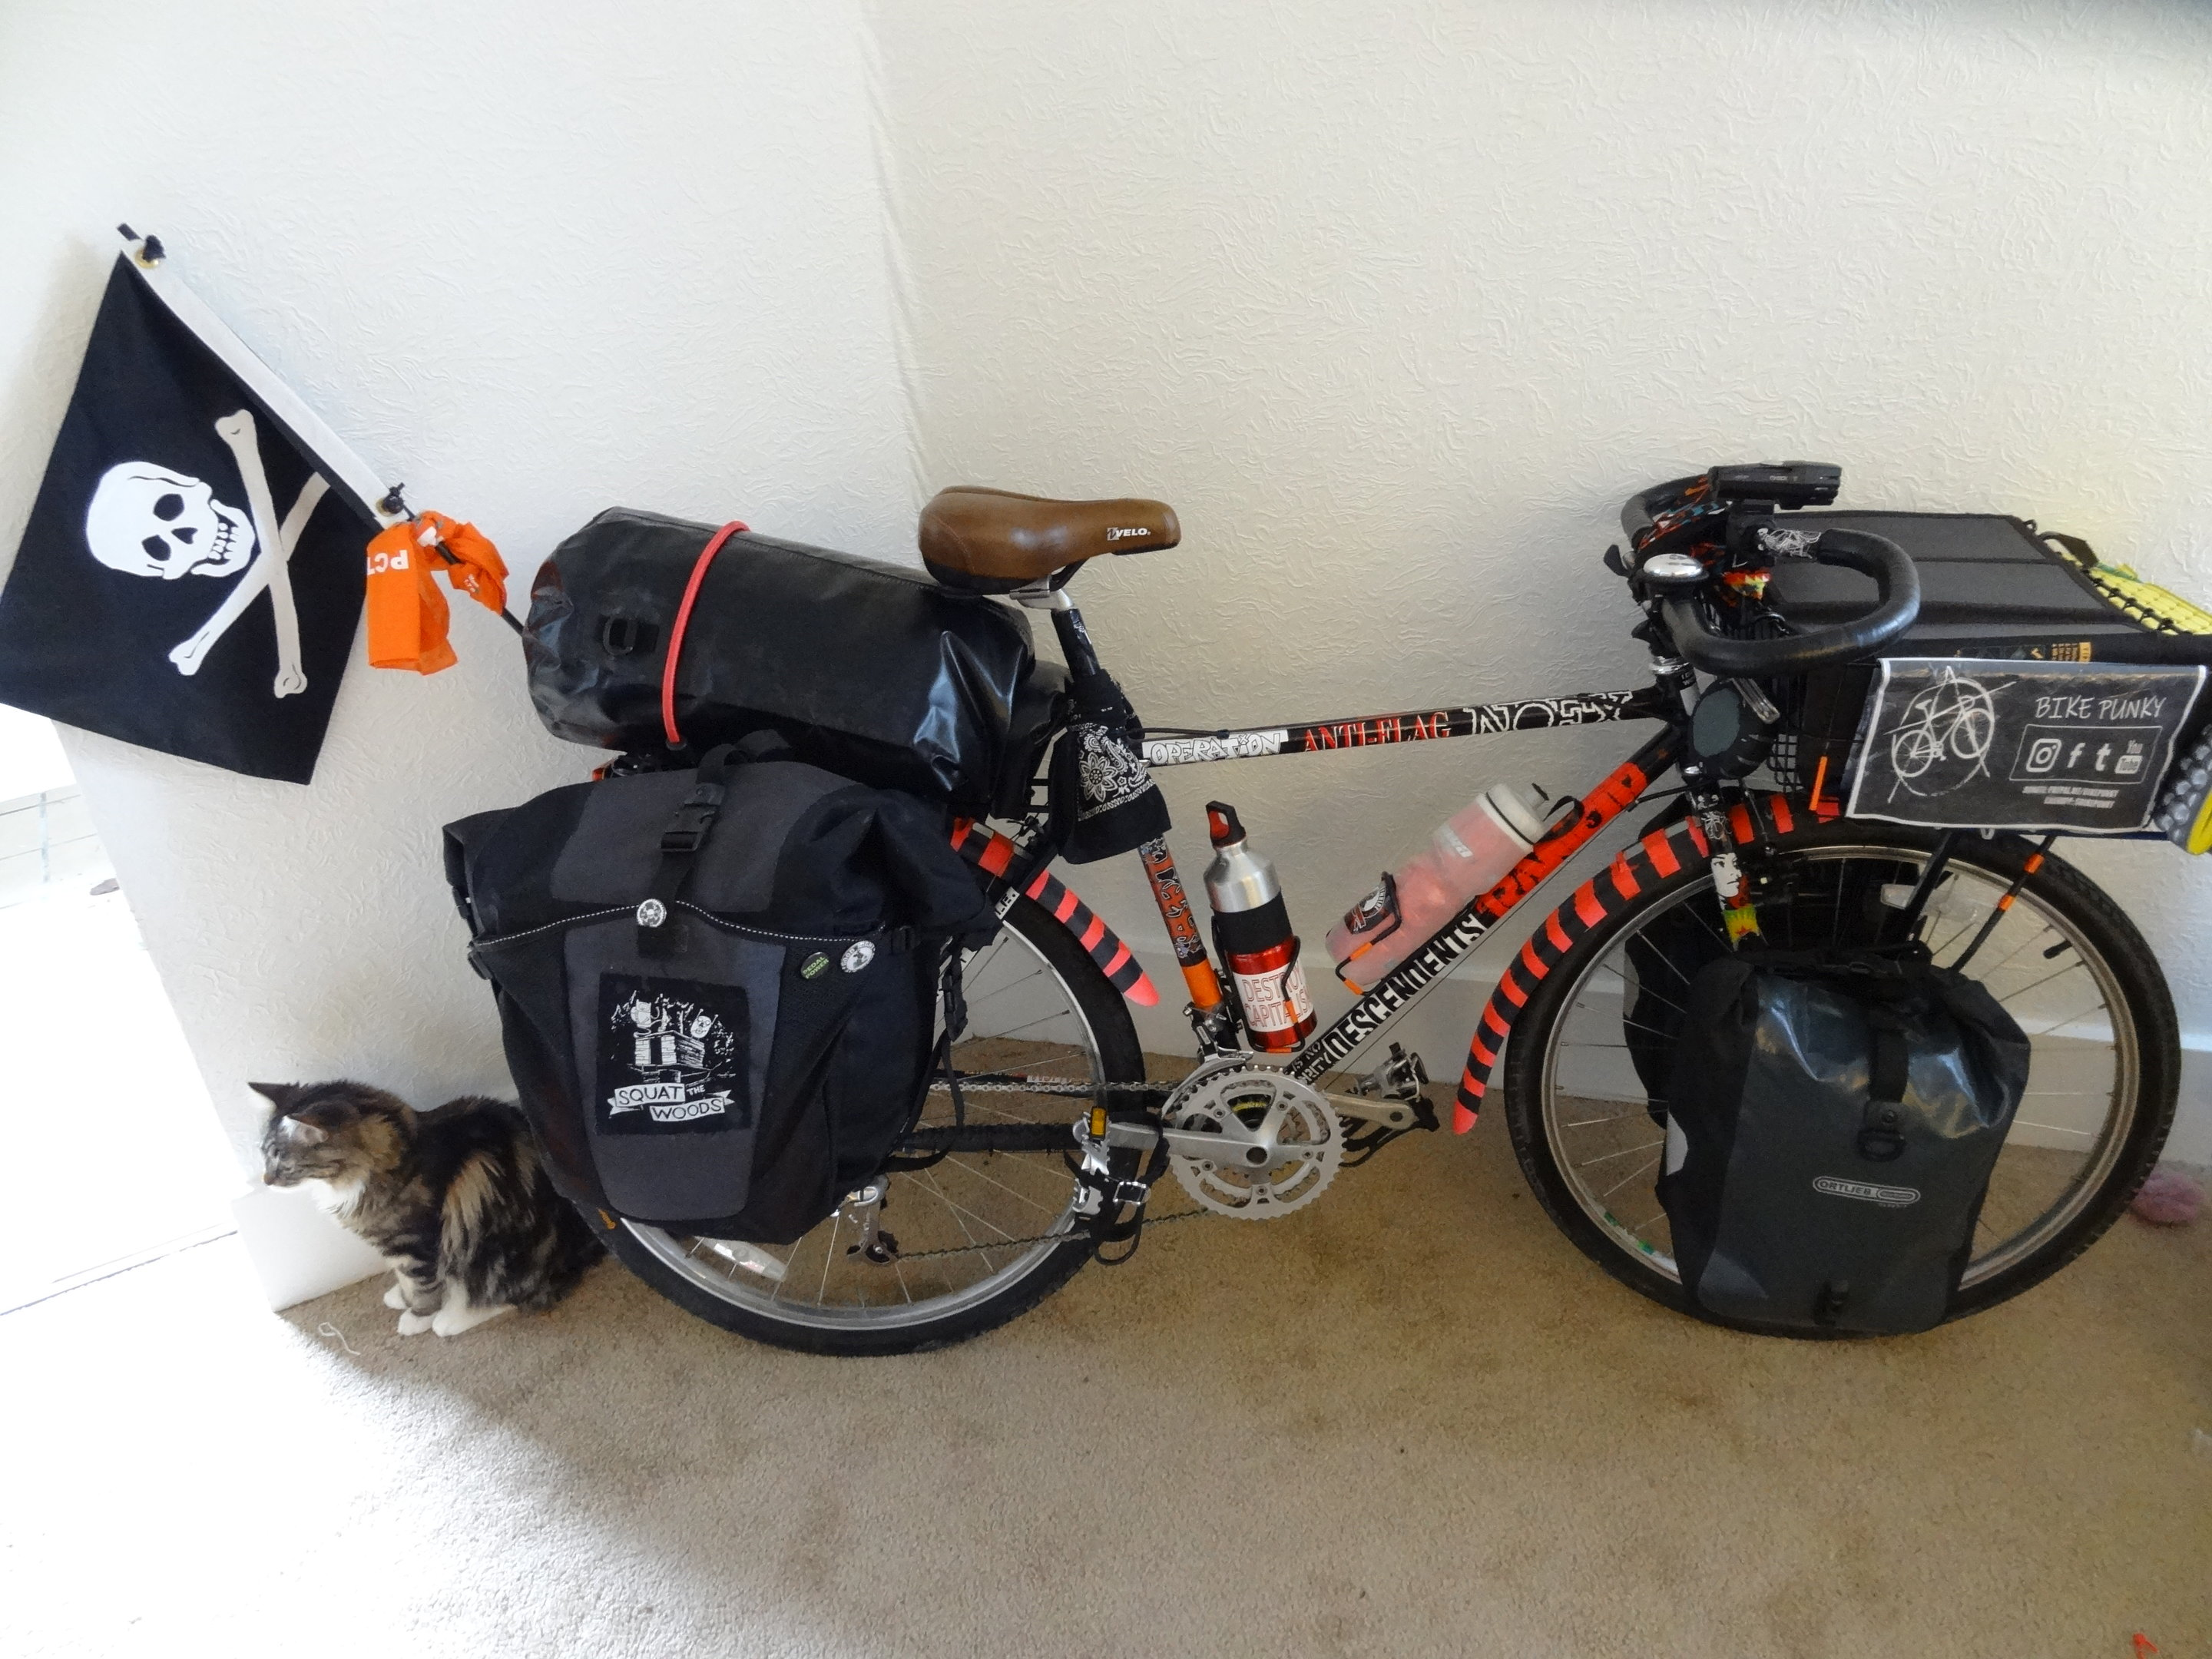 dsc00153-jpg.48443_Picture of your loaded bicycle_Bike Touring_Squat the Planet_4:07 PM